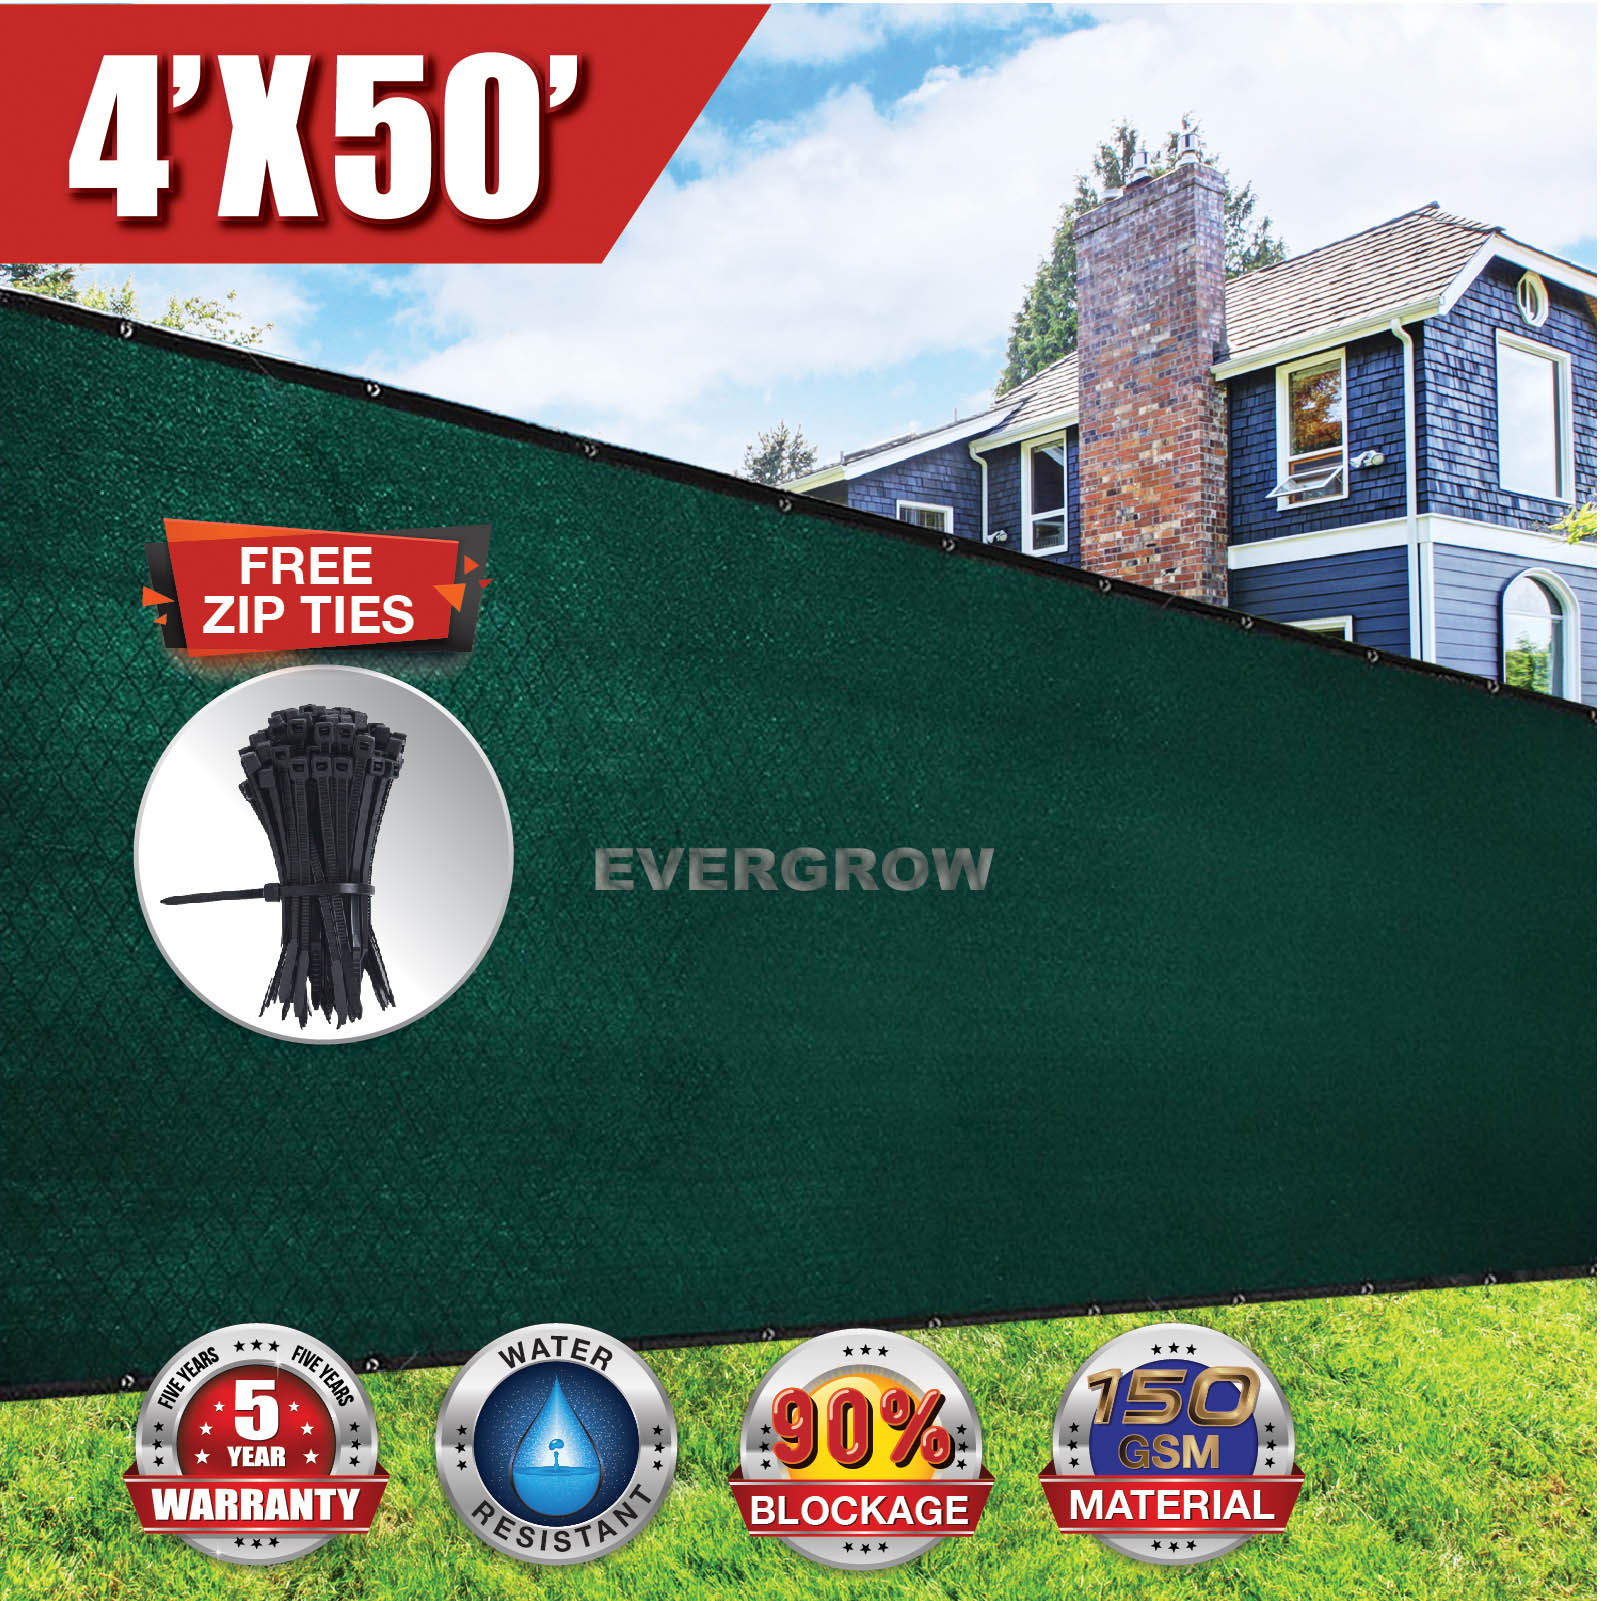 EVERGROW® 4' x 50' Dark Green Privacy fence screen 150 GSM Heavy Duty Windscreen Fence Shade Netting Cover Outdoor Patio 90% UV Blockage FREE Zip Ties 5 Years Warranty (G-FENCE-4X50-GREEN)